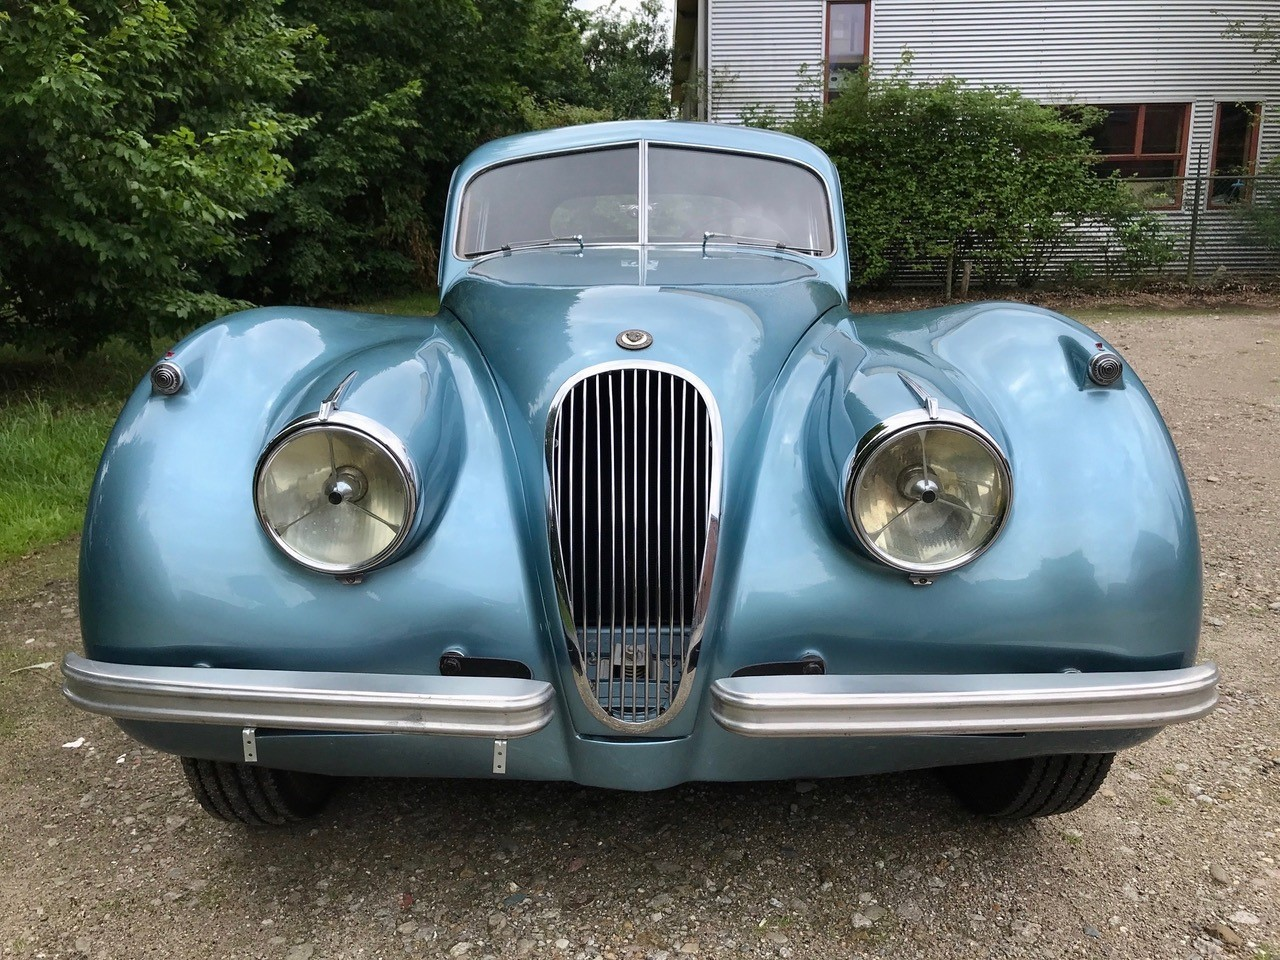 Jaguar XK120 FHC 1952 for sale by Via Marco Classic Car Collection